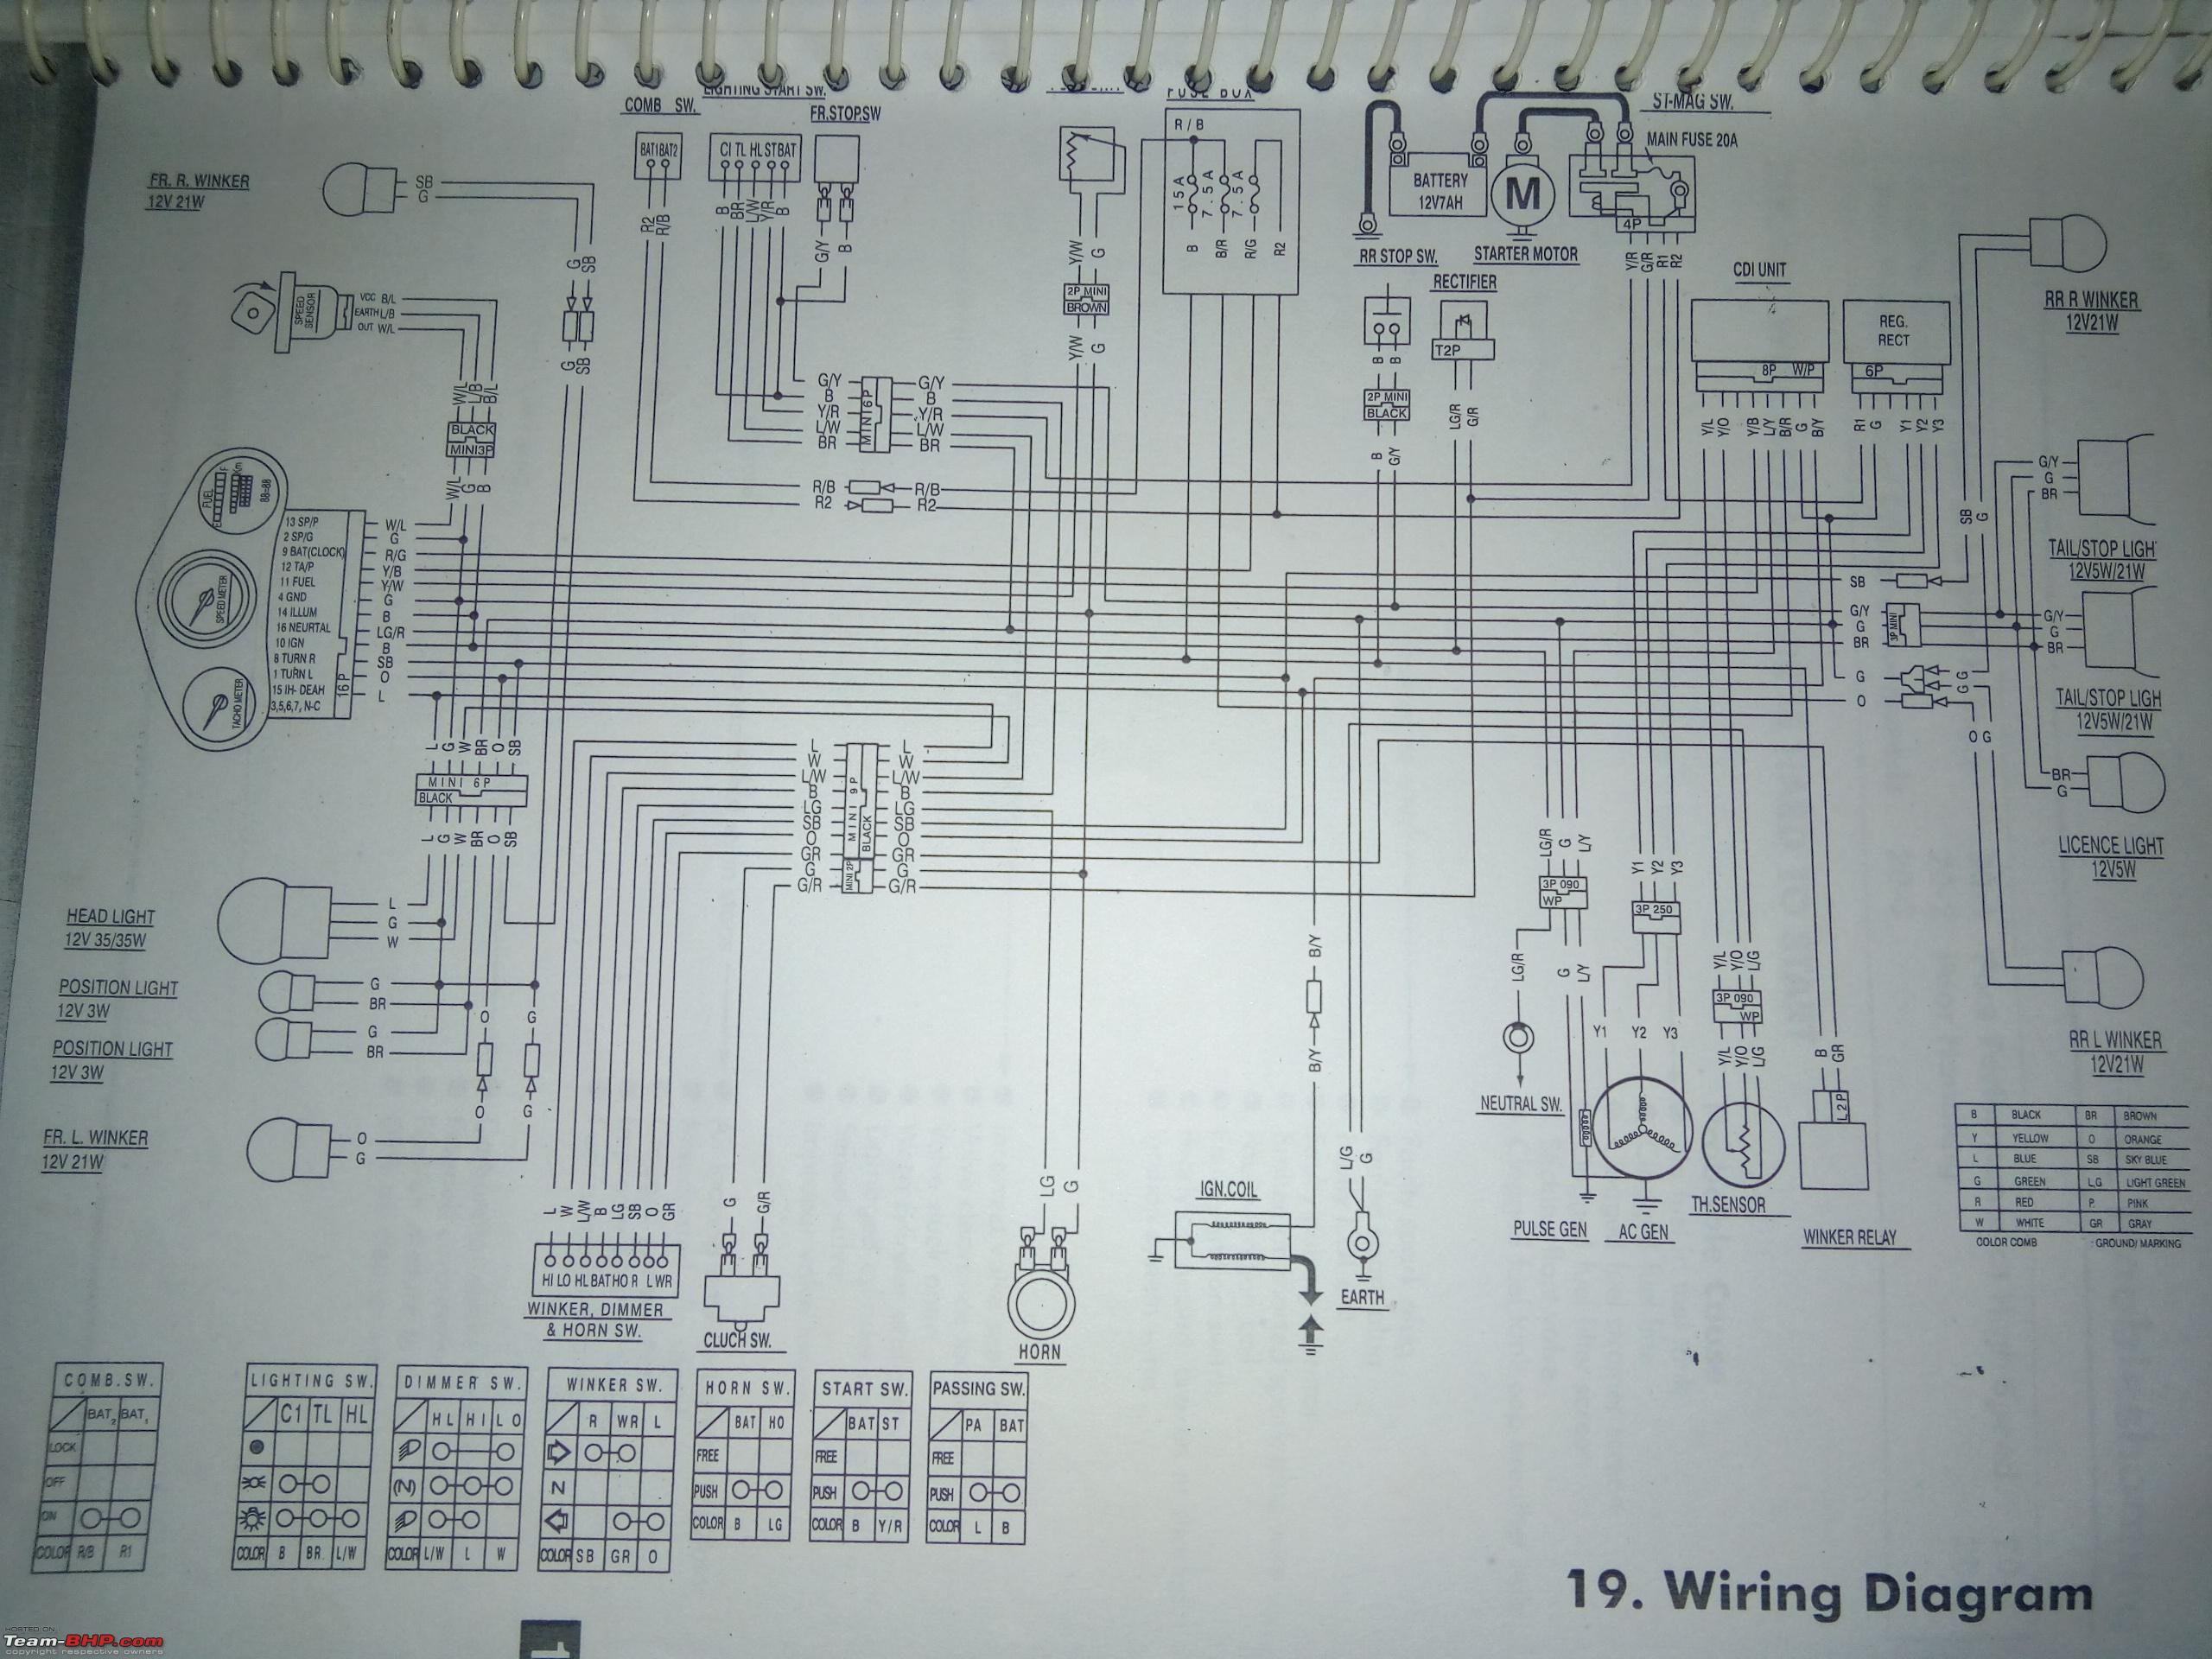 Wiring Diagram Of Karizma R : Wiring diagrams of indian two wheelers page team bhp